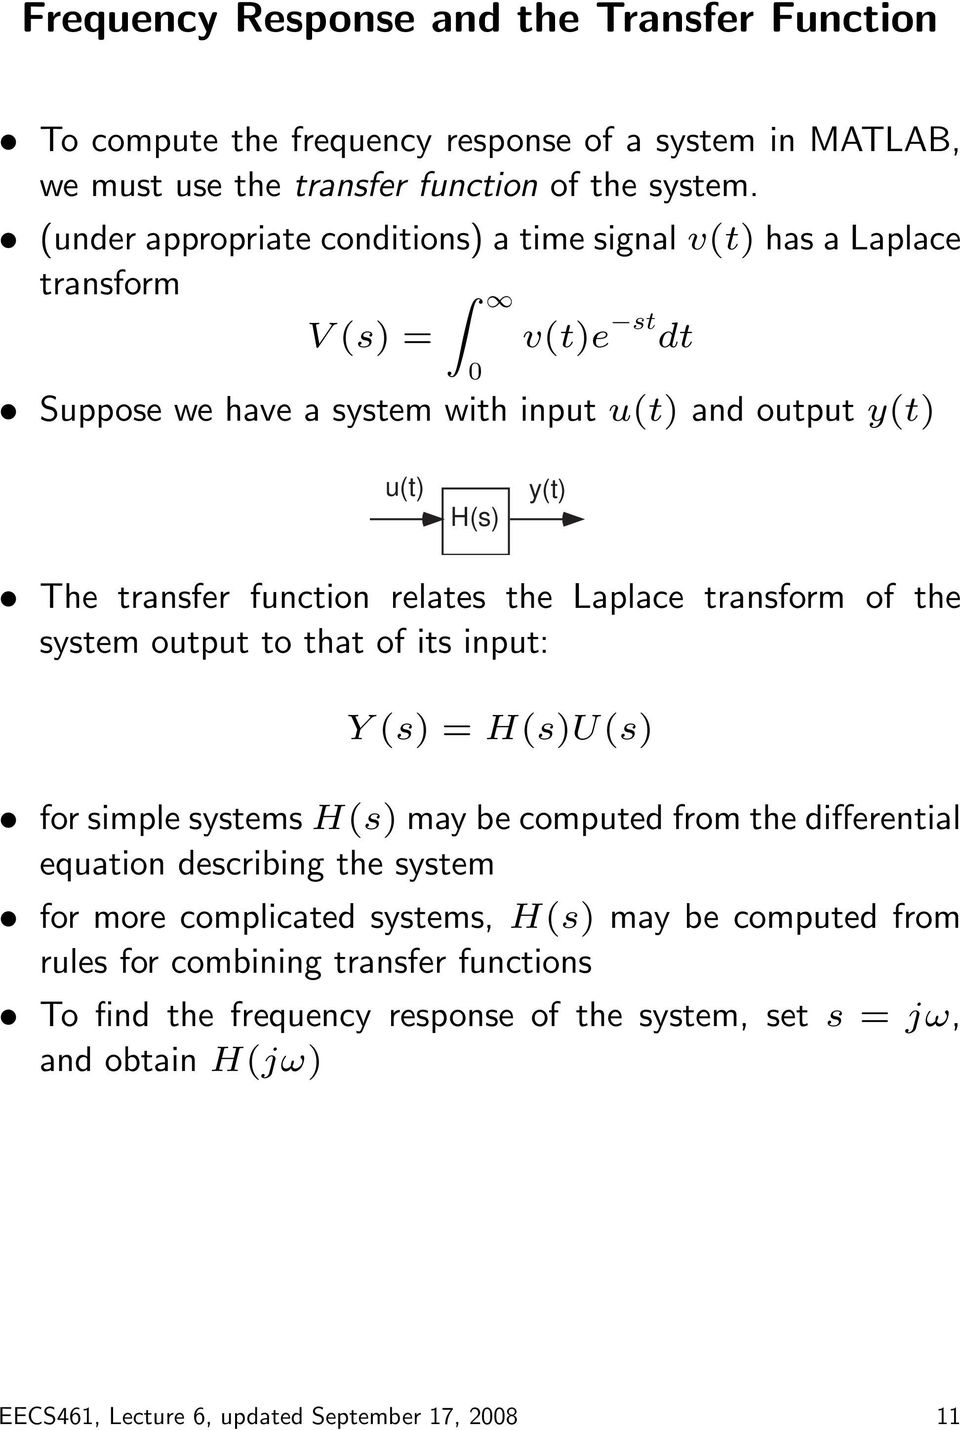 function relates the Laplace transform of the system output to that of its input: Y (s) = H(s)U(s) for simple systems H(s) may be computed from the differential equation describing